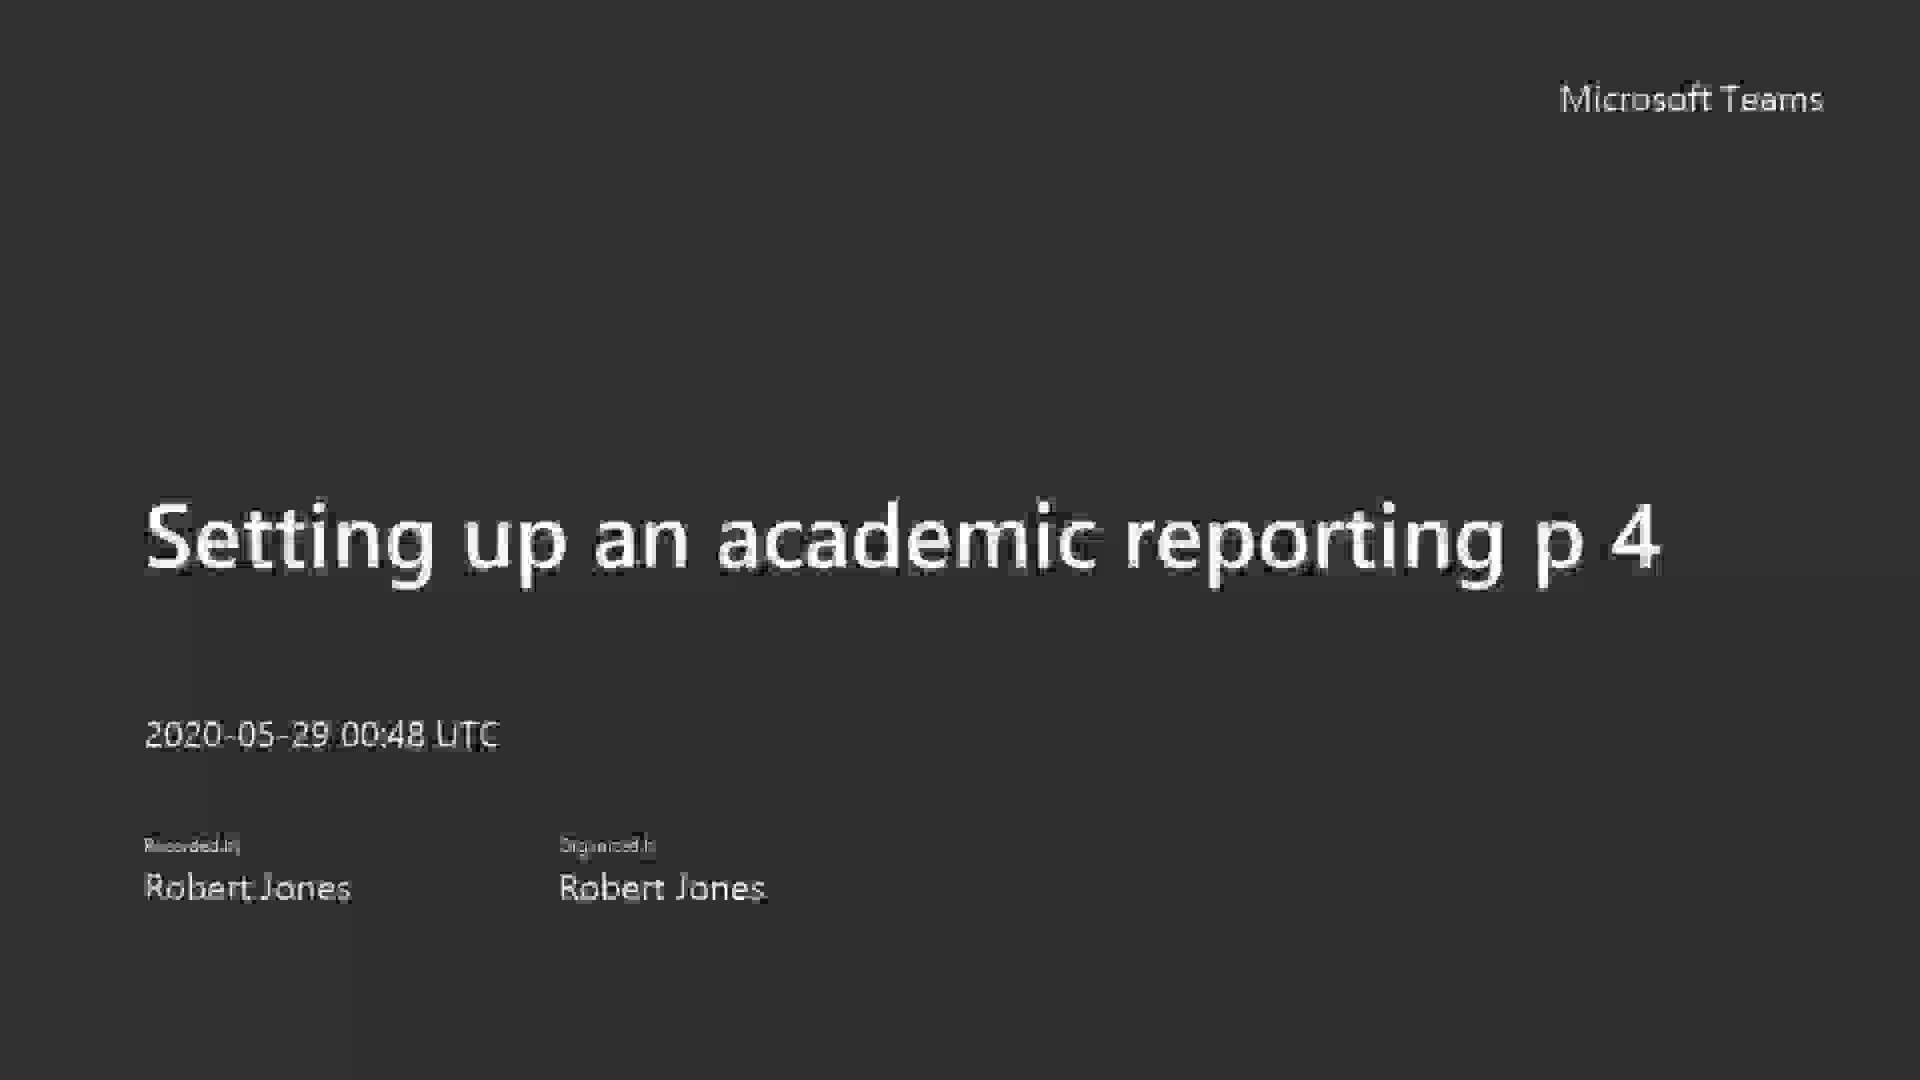 3.1 Setting up an academic reporting period